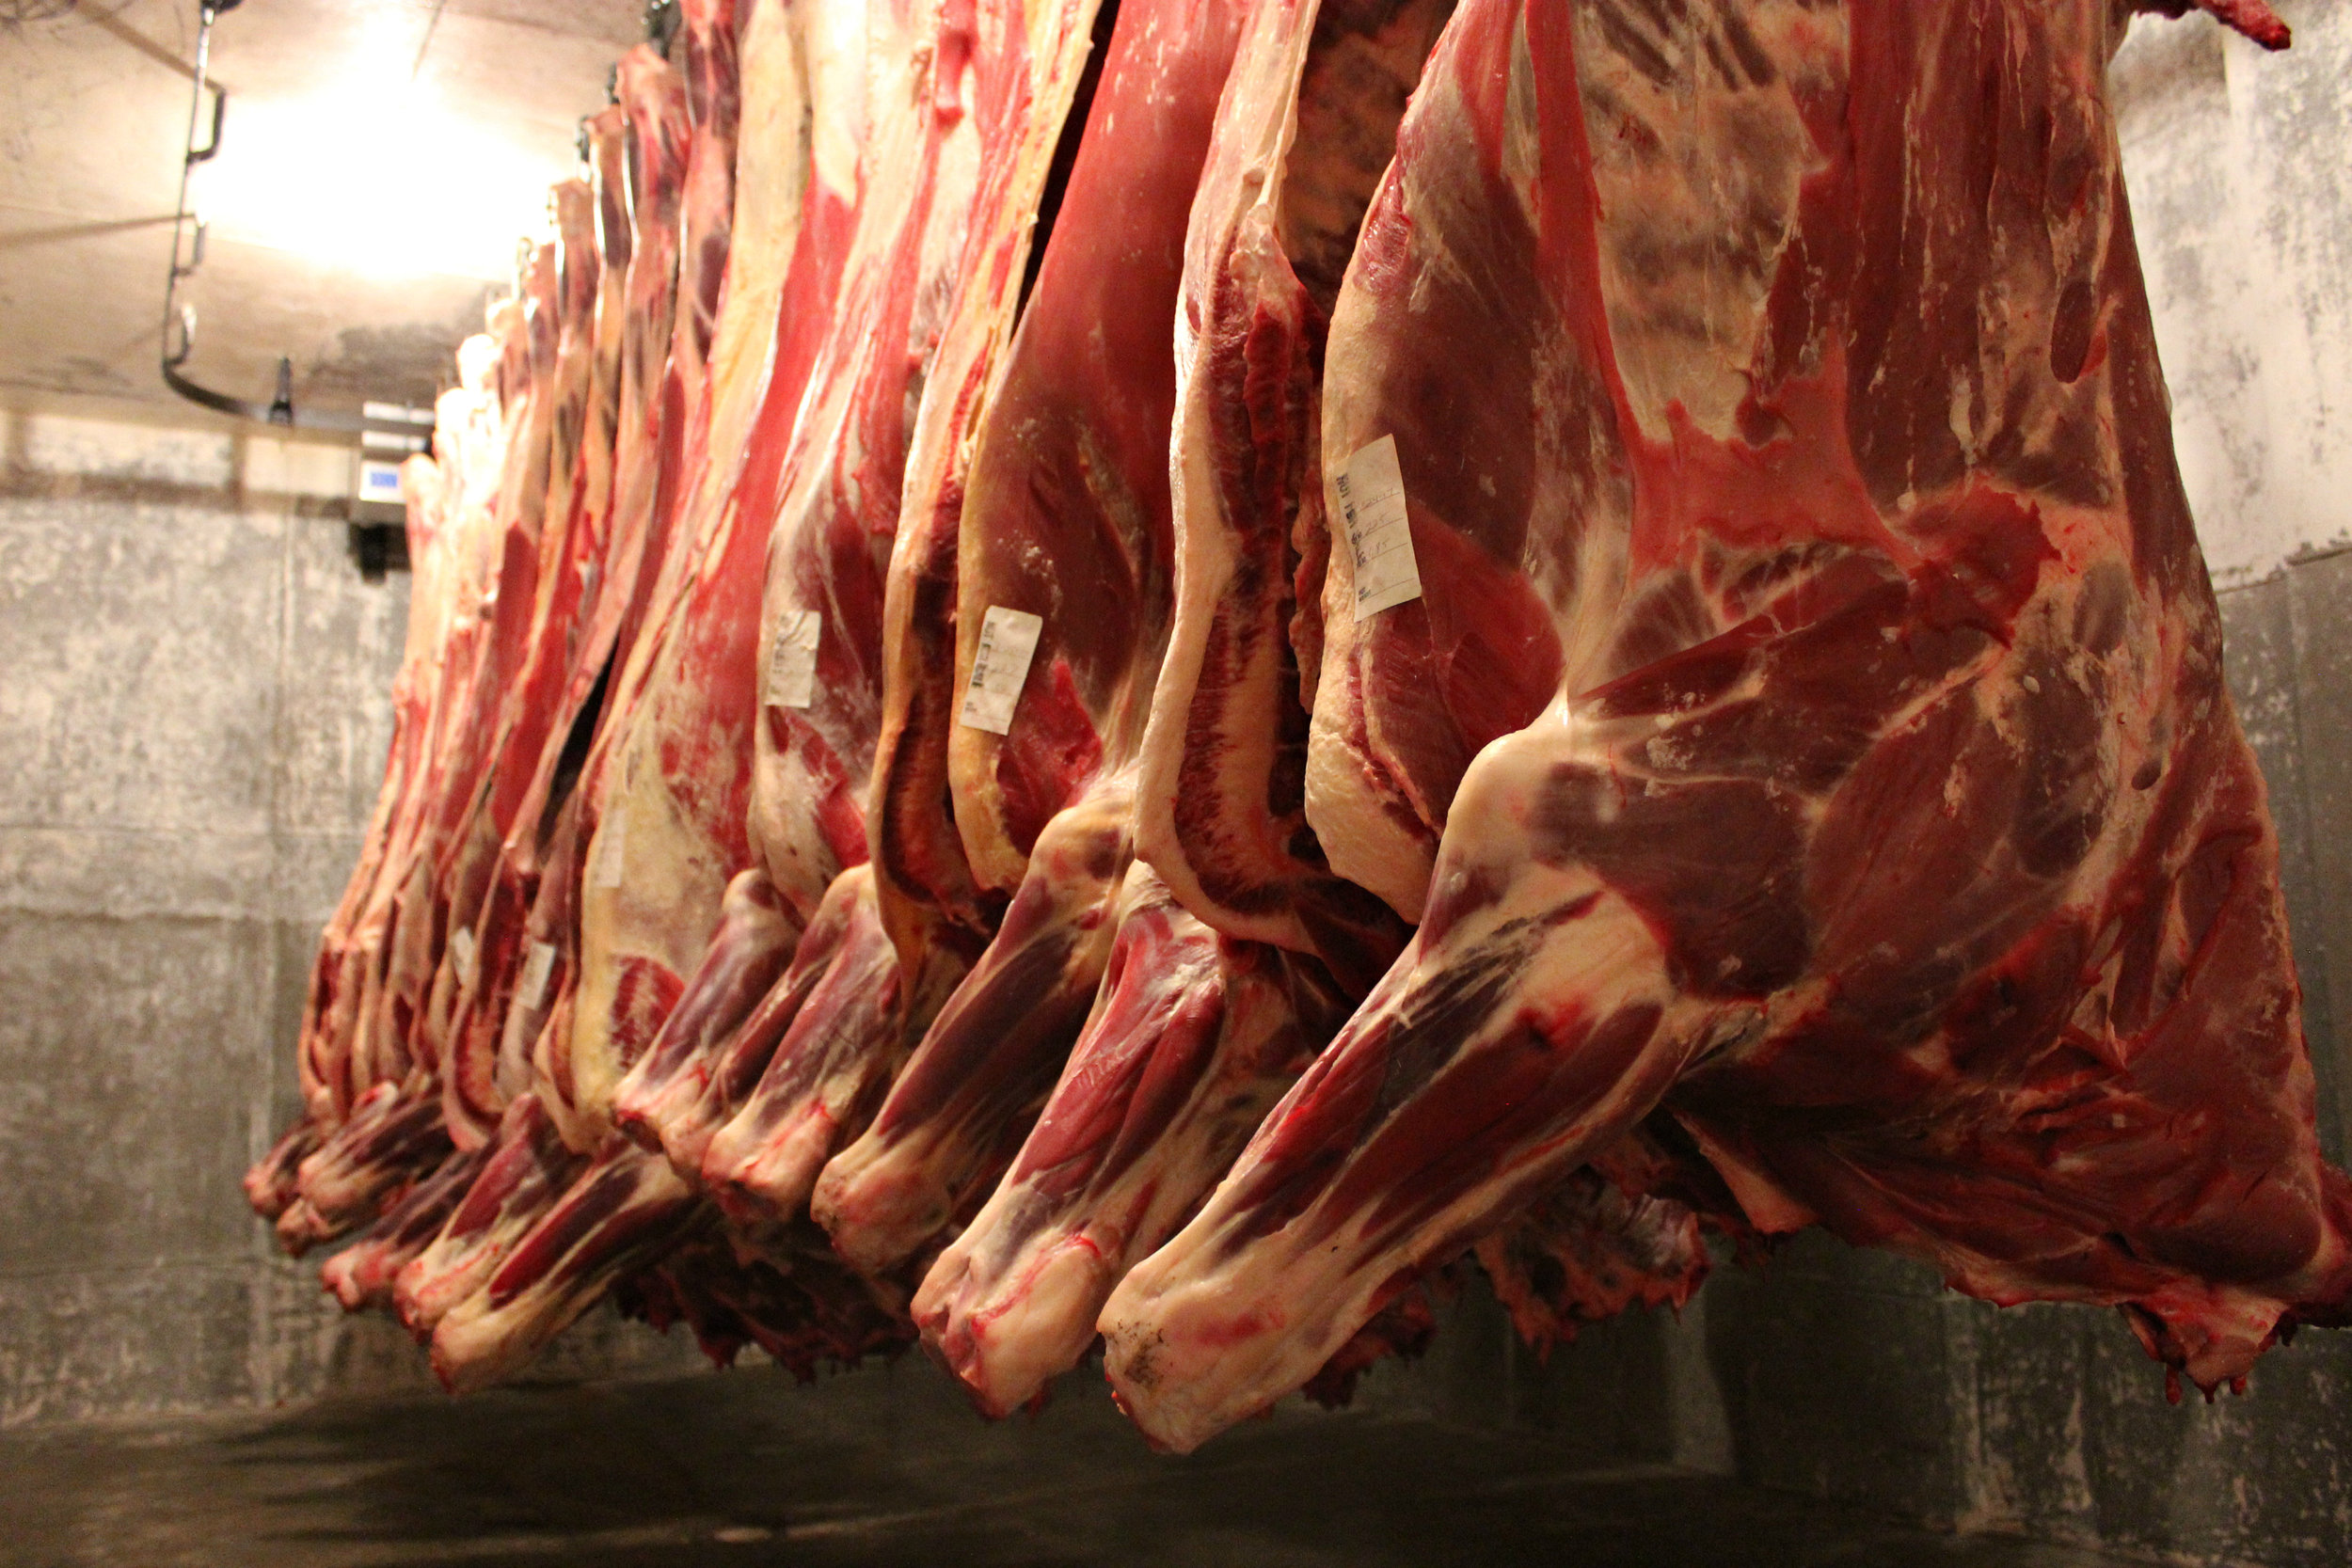 Custom vs usda - Custom processing is only for meat that you wish to eat at home and is not for sale. USDA-inspected processing is for resale. You cannot do custom processing and sell to others. The cut forms are available below. You can select your cuts or have us help guide you through what would be a possible harvest.